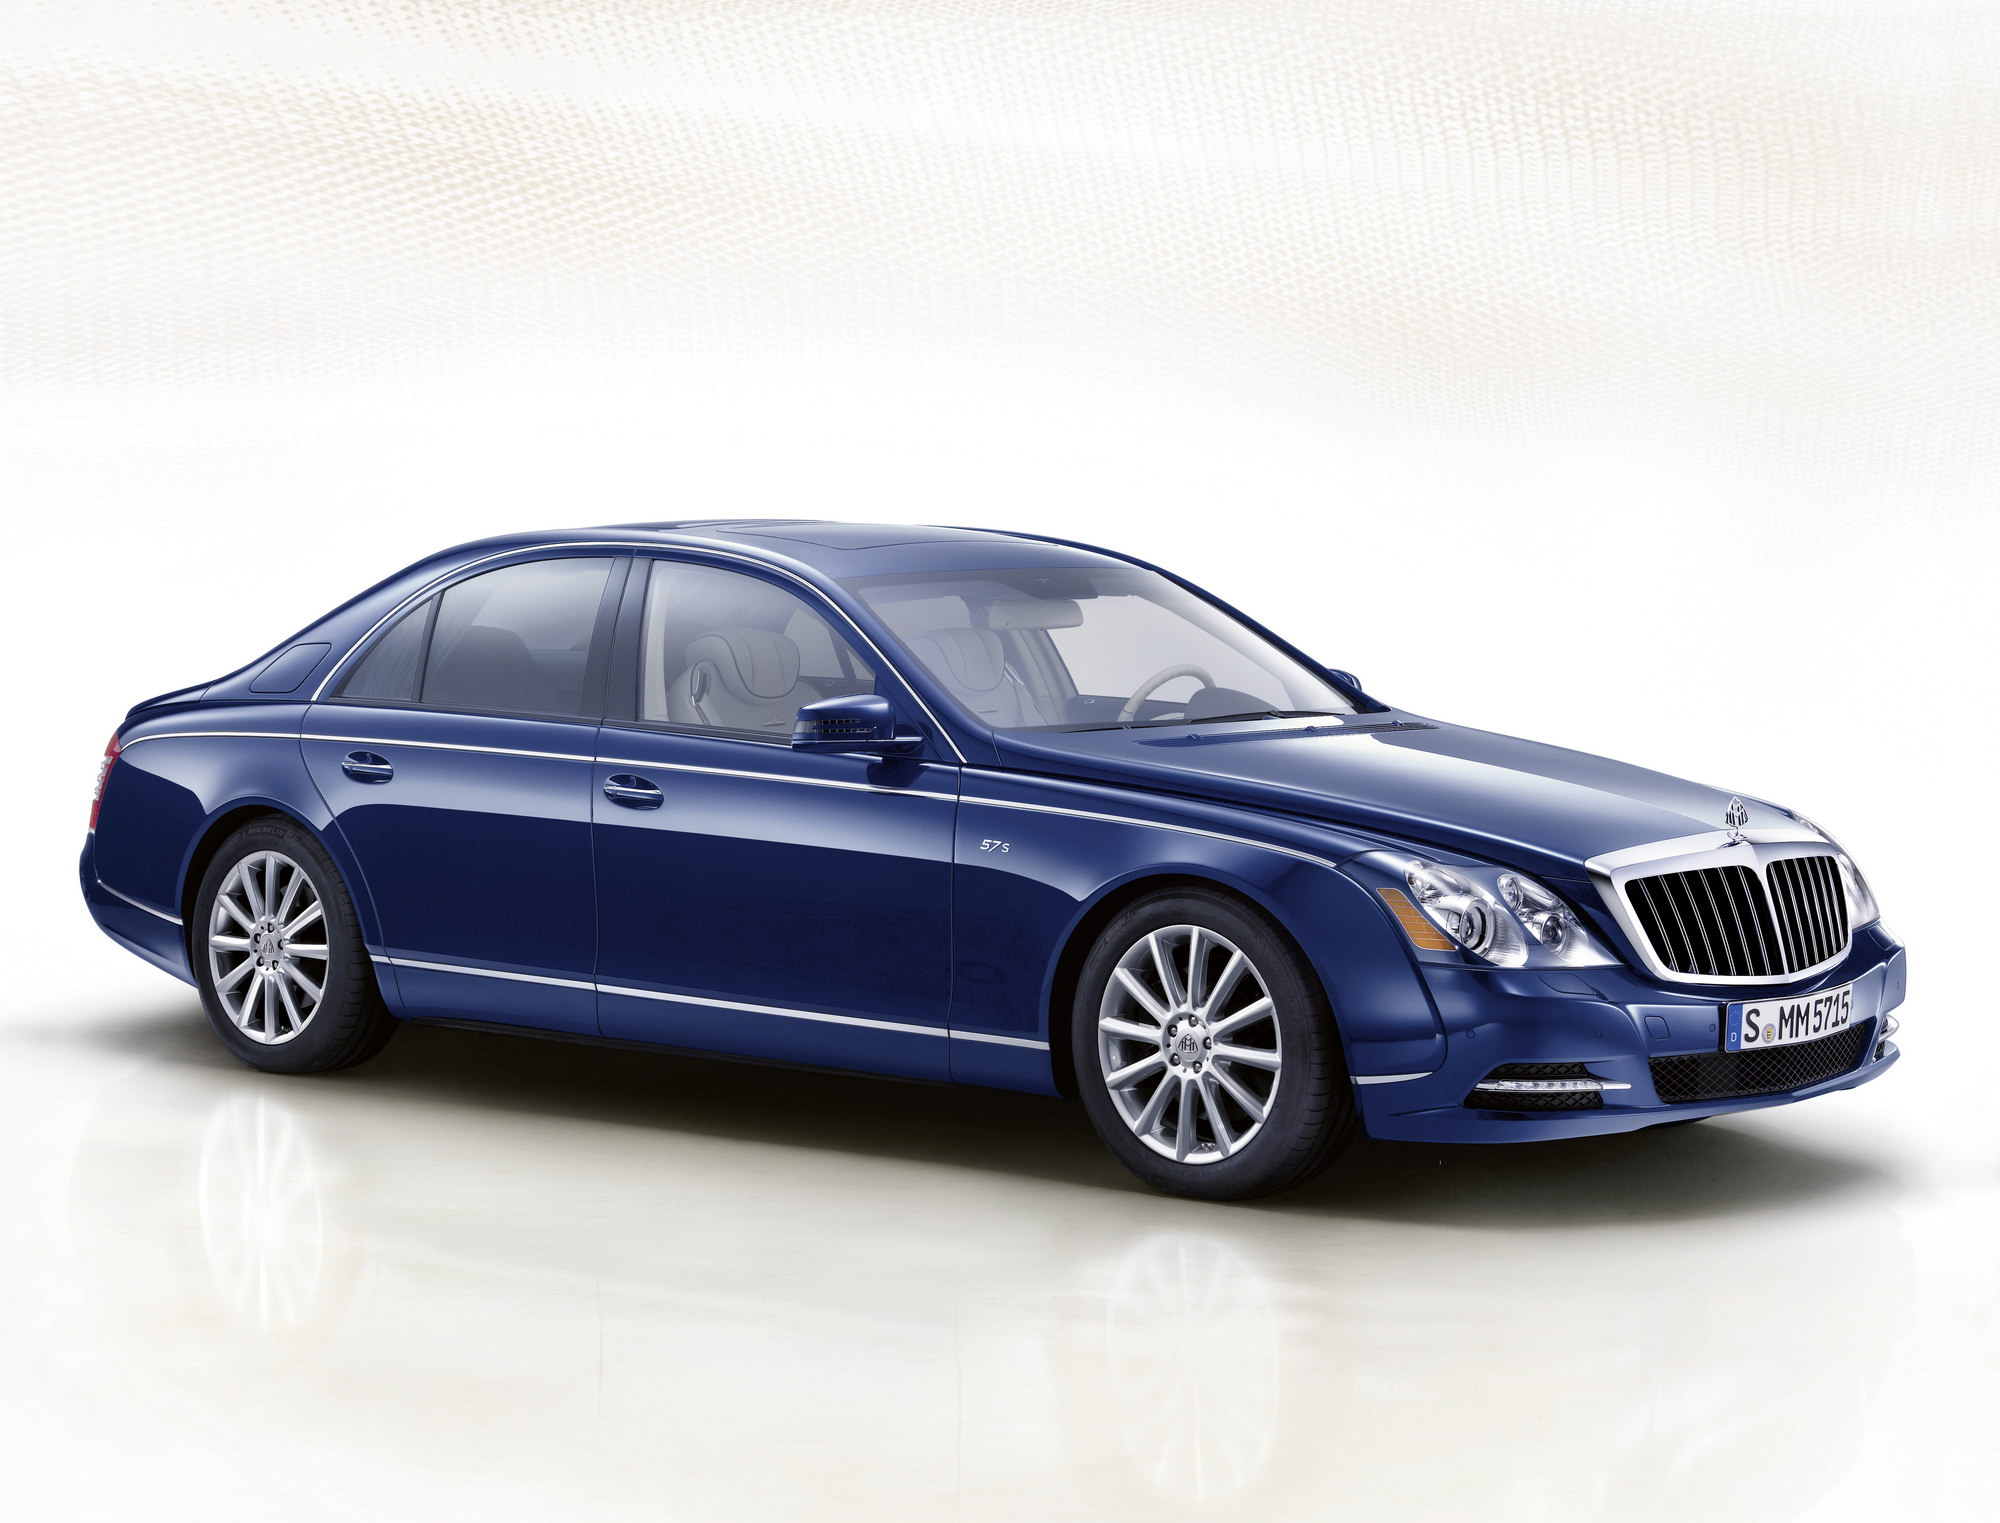 2011 Maybach 57 And 62 Facelift Review   Top Speed. »